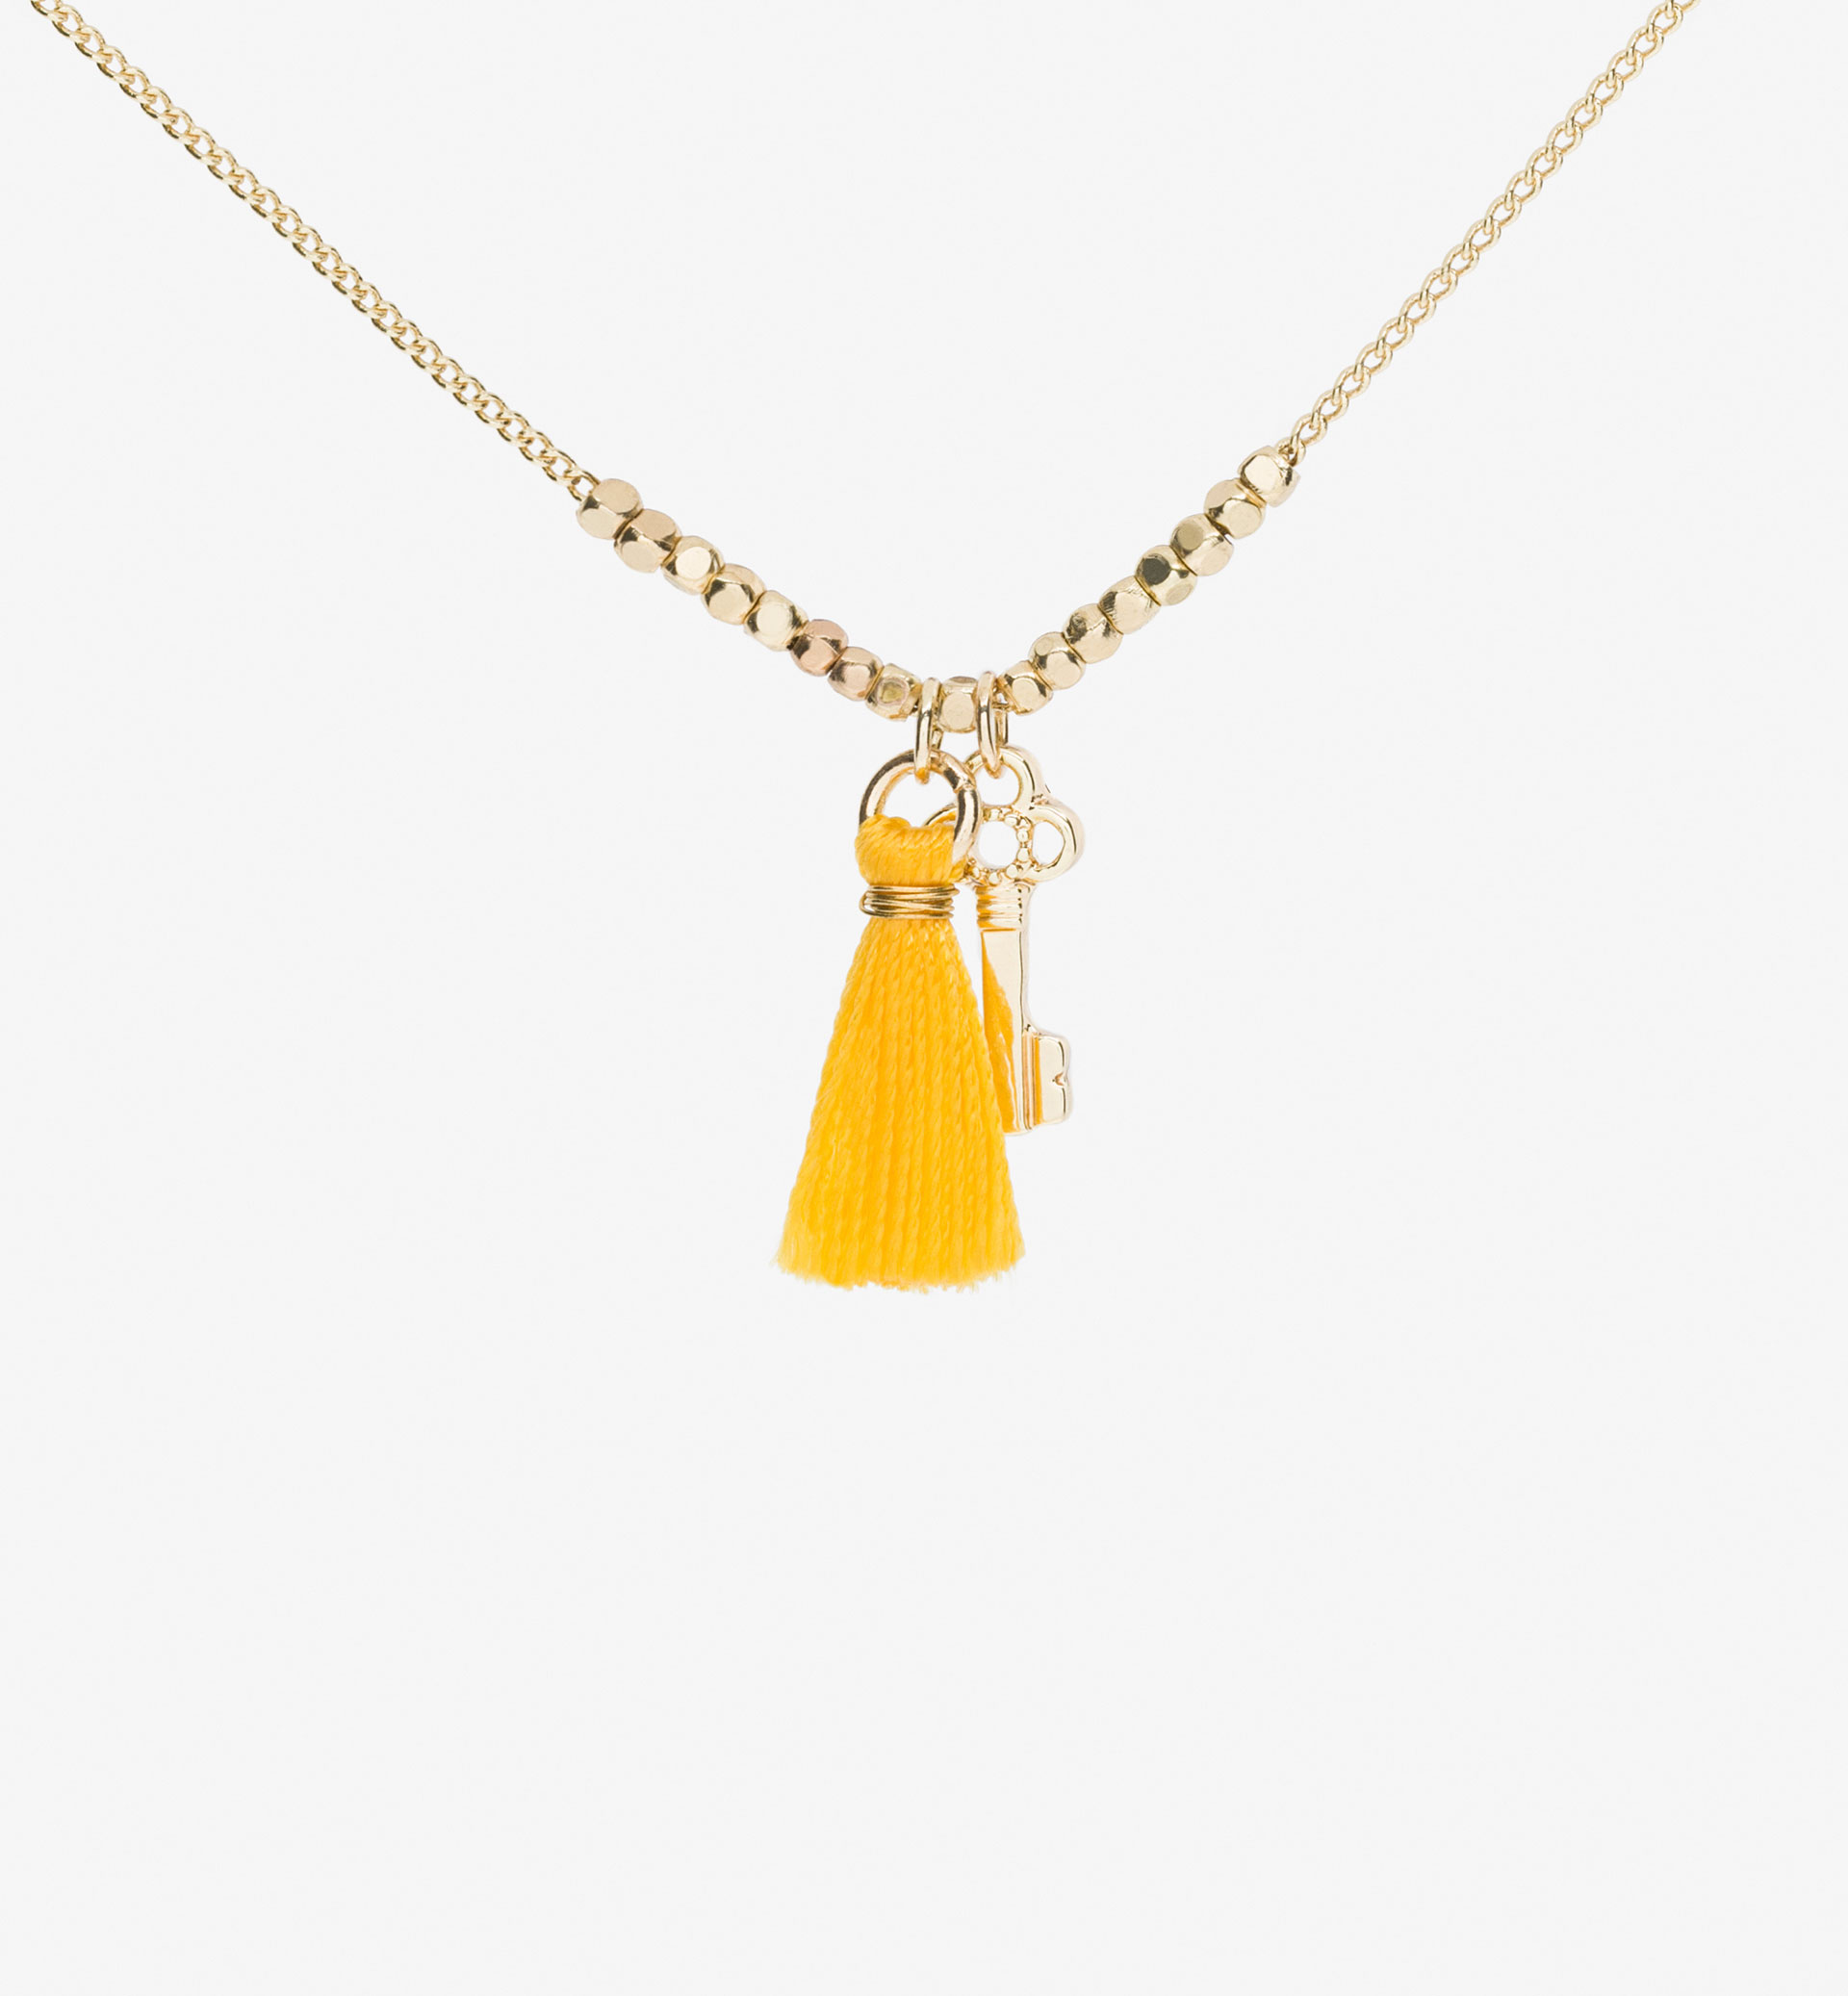 KEY AND POMPOM NECKLACE